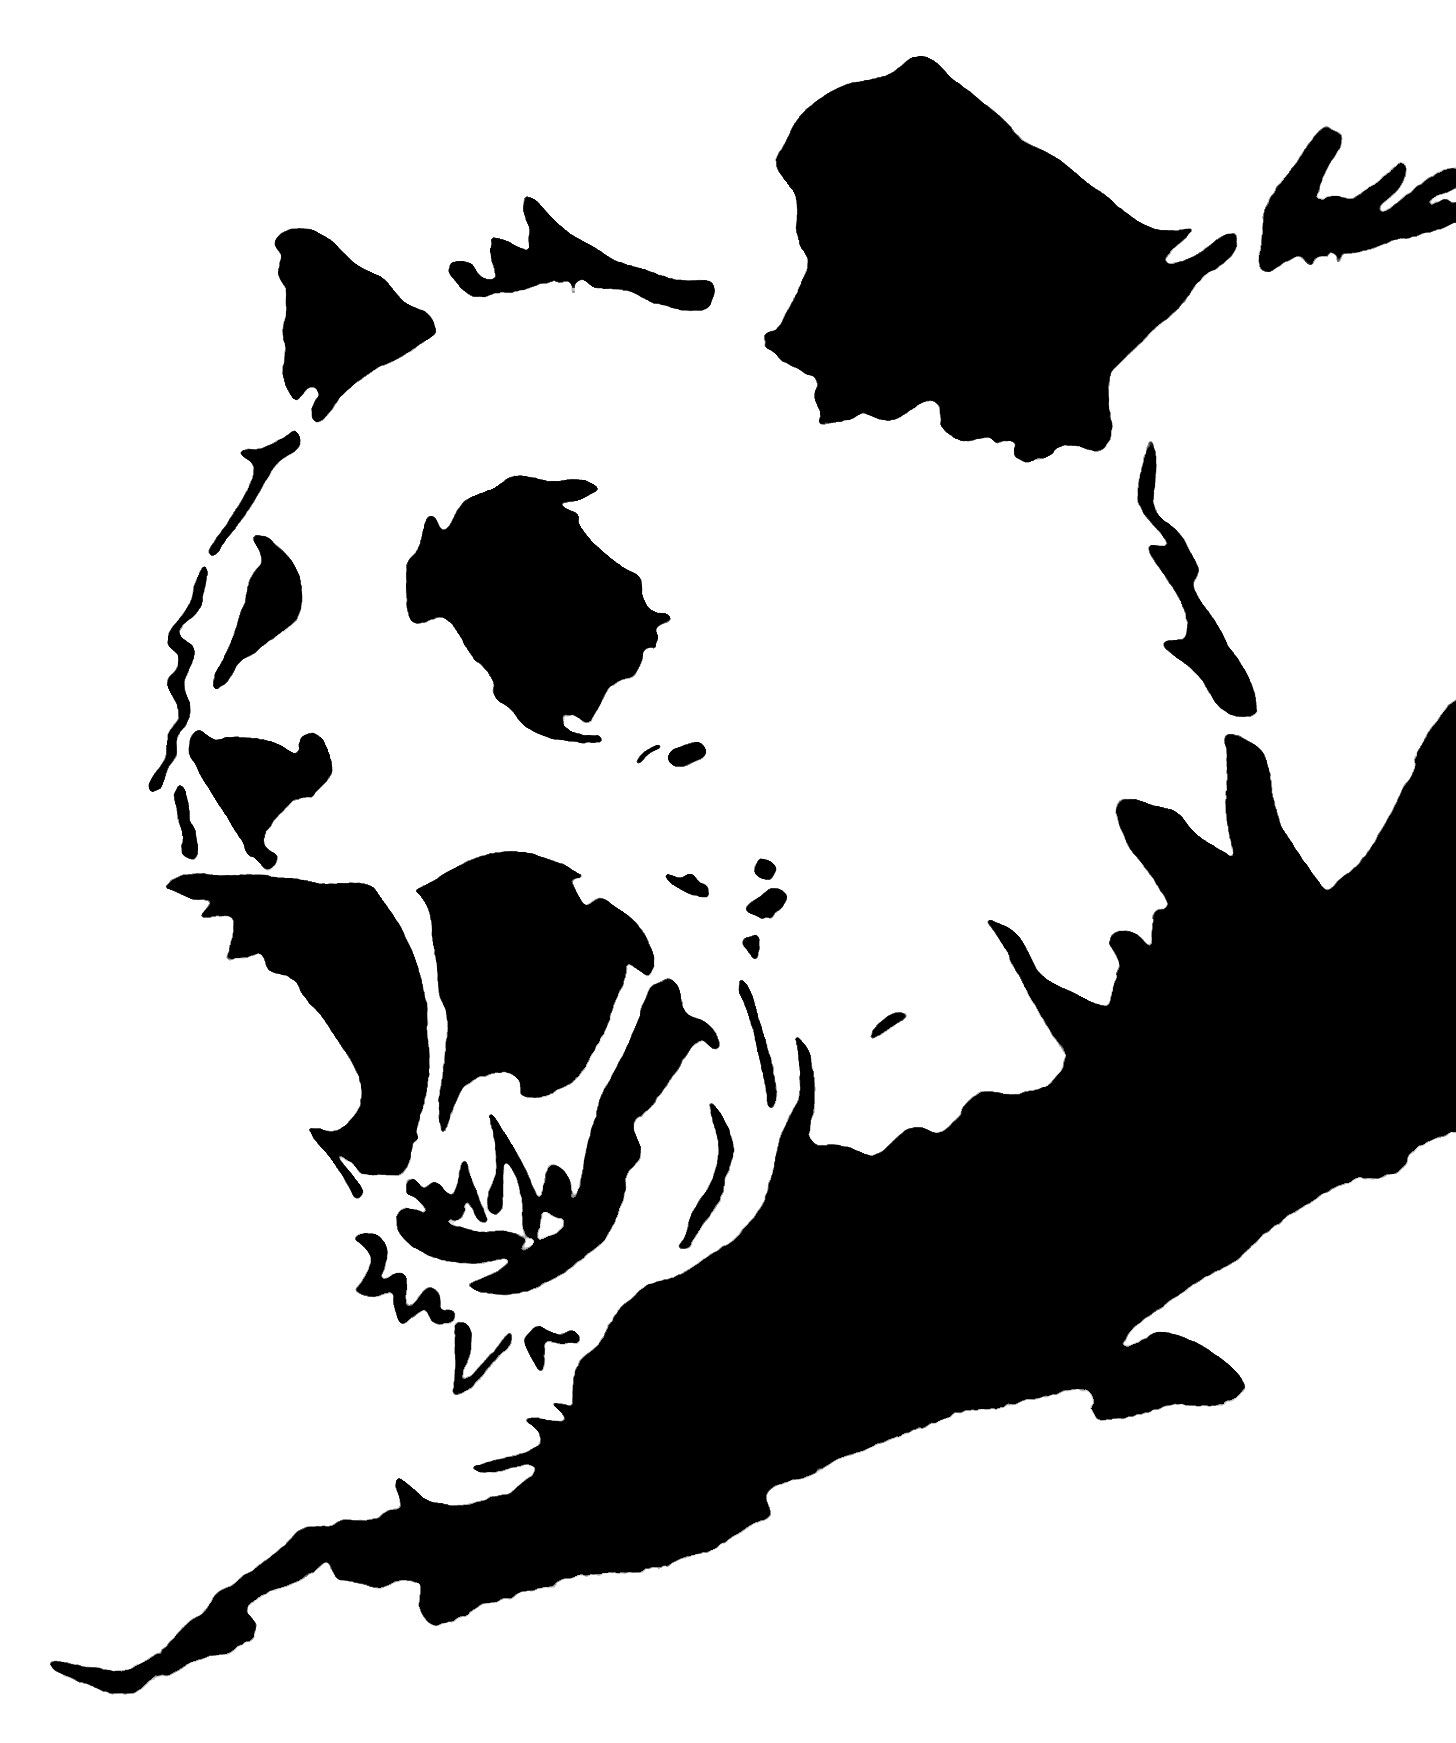 Free printable stencils for painting t shirt stencils designs free - Angry Panda Stencil Template T Shirt Design